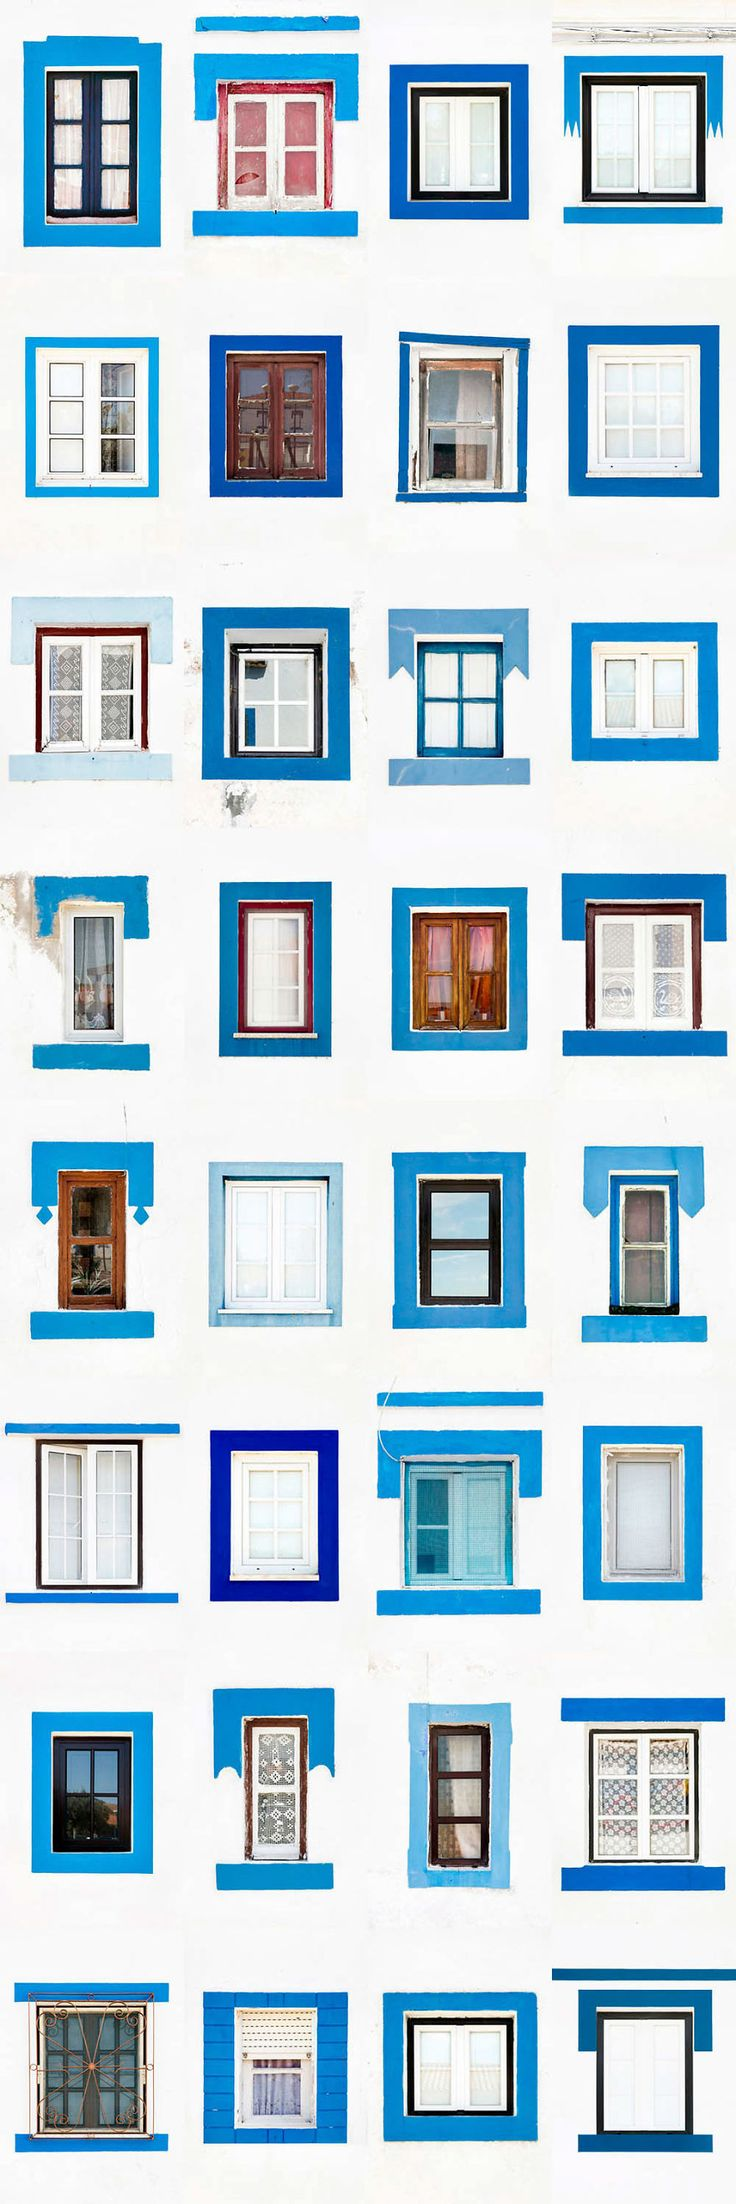 I Traveled All Over #Portugal To Photograph Windows, And Captured More Than 3200 Of Them - via BoredPanda 23-10-2017 | If you are planning a trip to Portugal, you can see which are the most beautiful cities to visit or what kind of architecture you like the most. Photo: Santa Susana